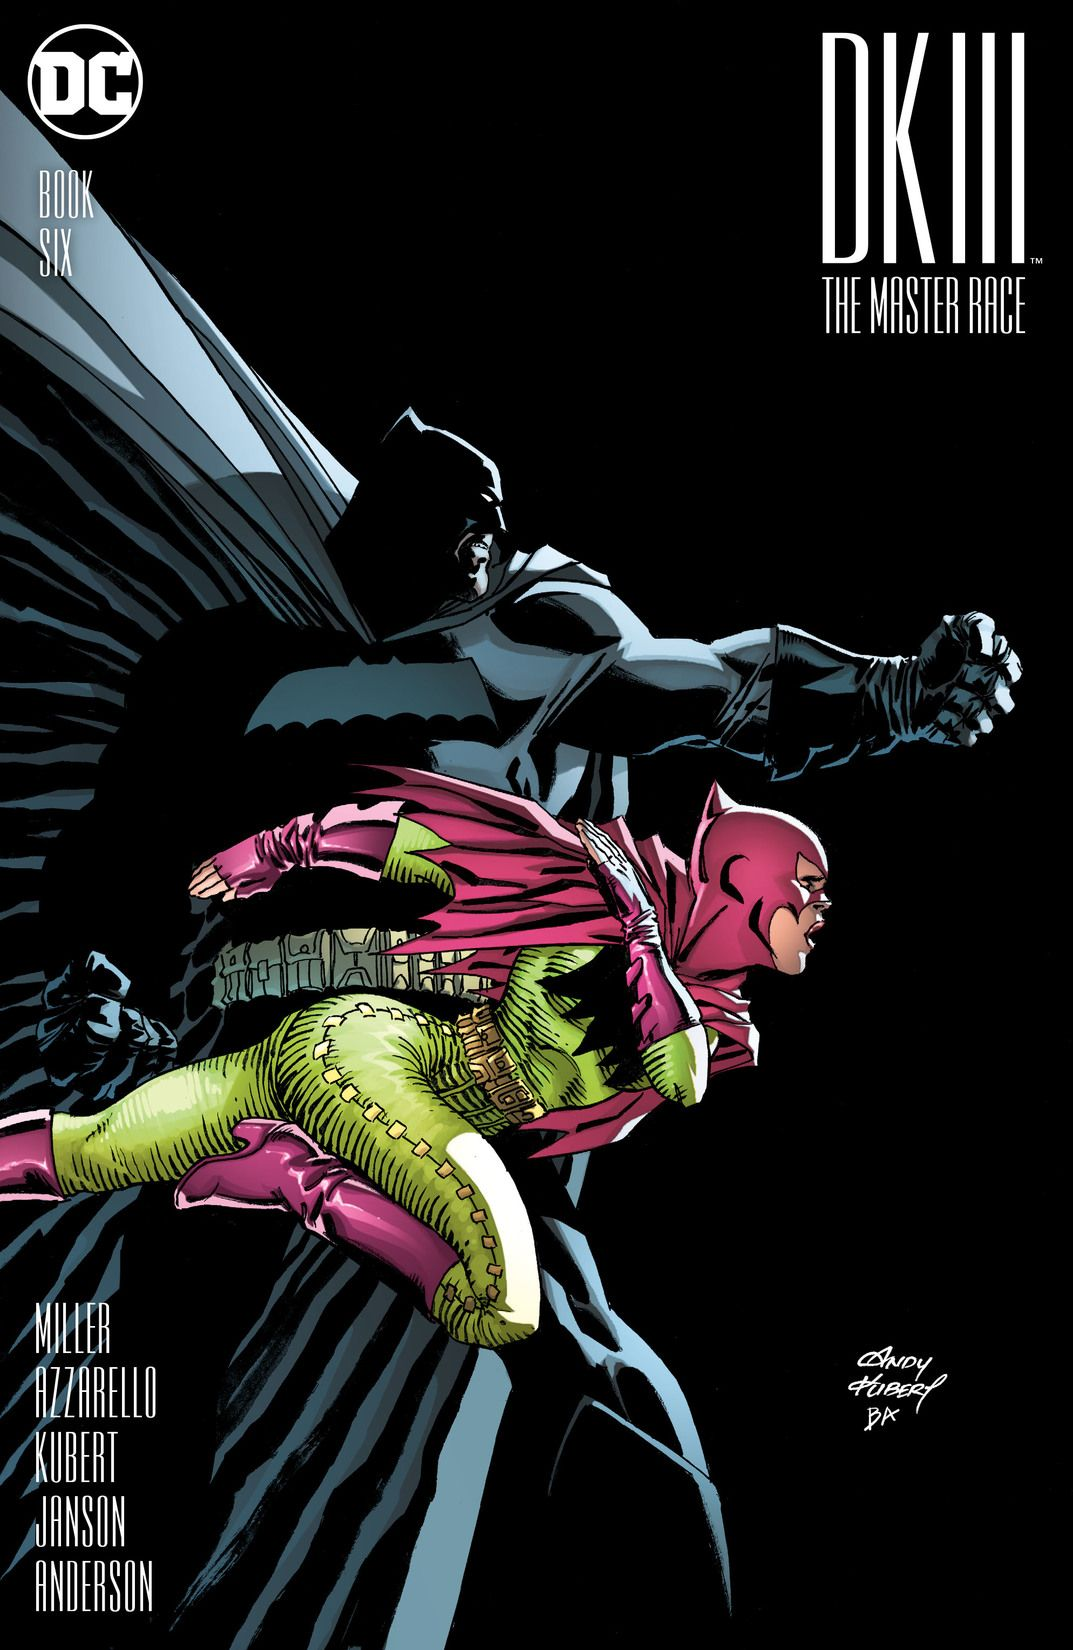 Dark Knight III: The Master Race Vol 1 6